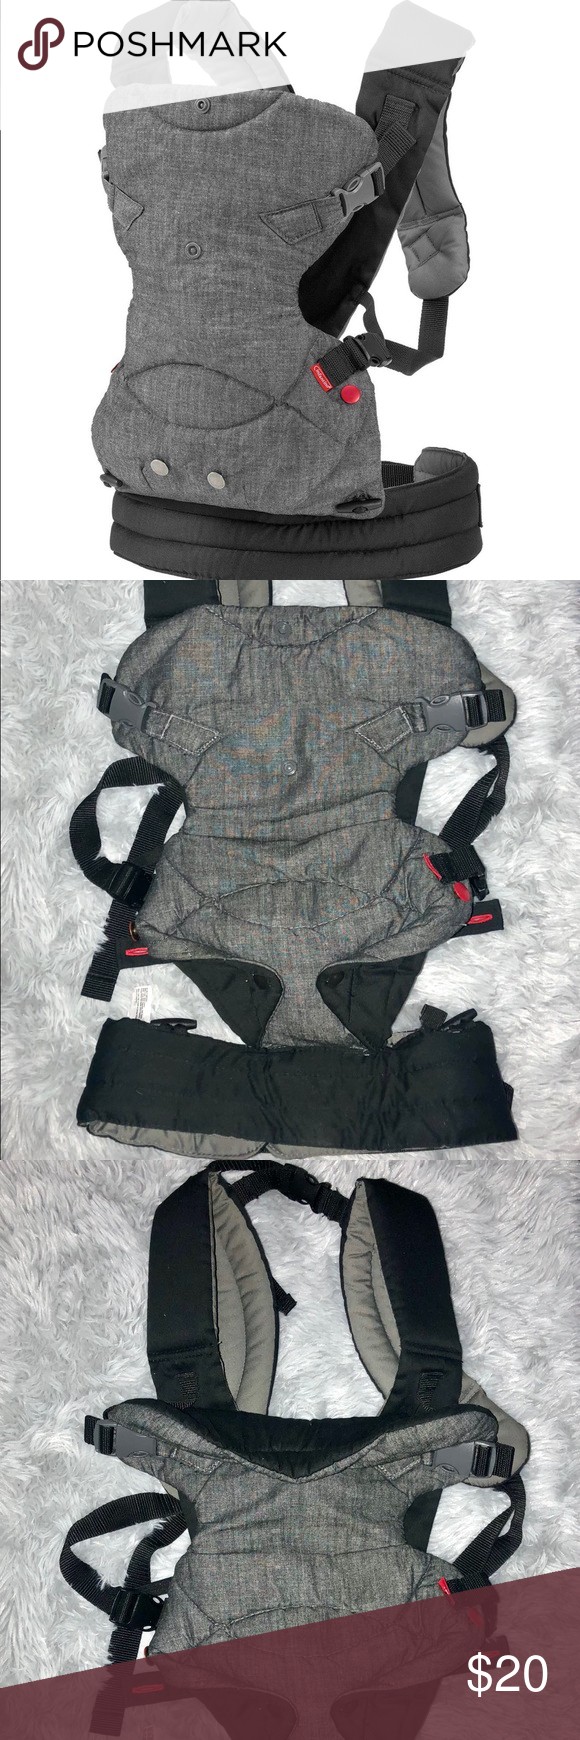 Infantino Fusion Baby Carrier Black Gray Infantino Fusion Flexible